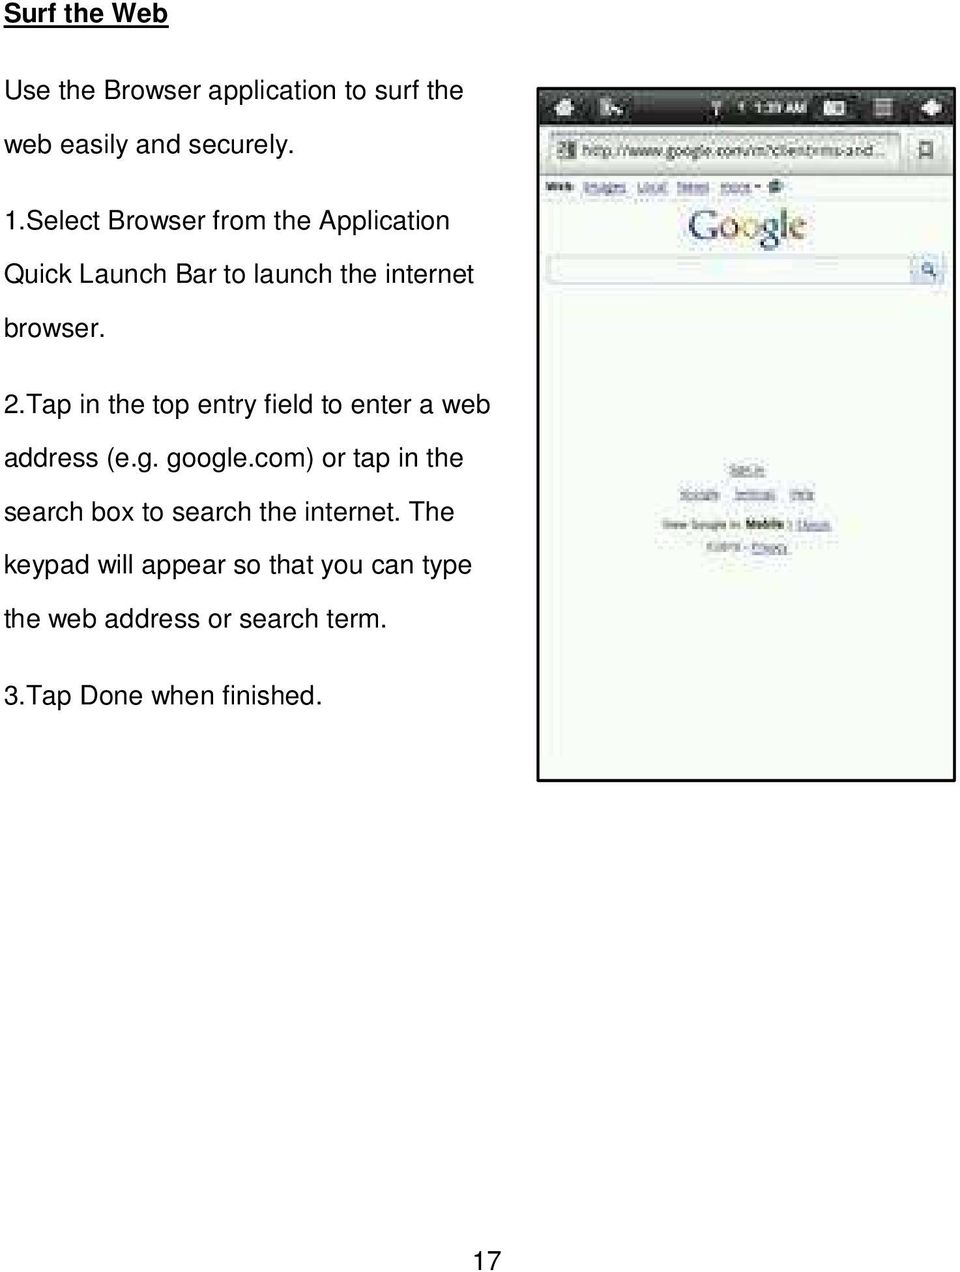 Tap in the top entry field to enter a web address (e.g. google.